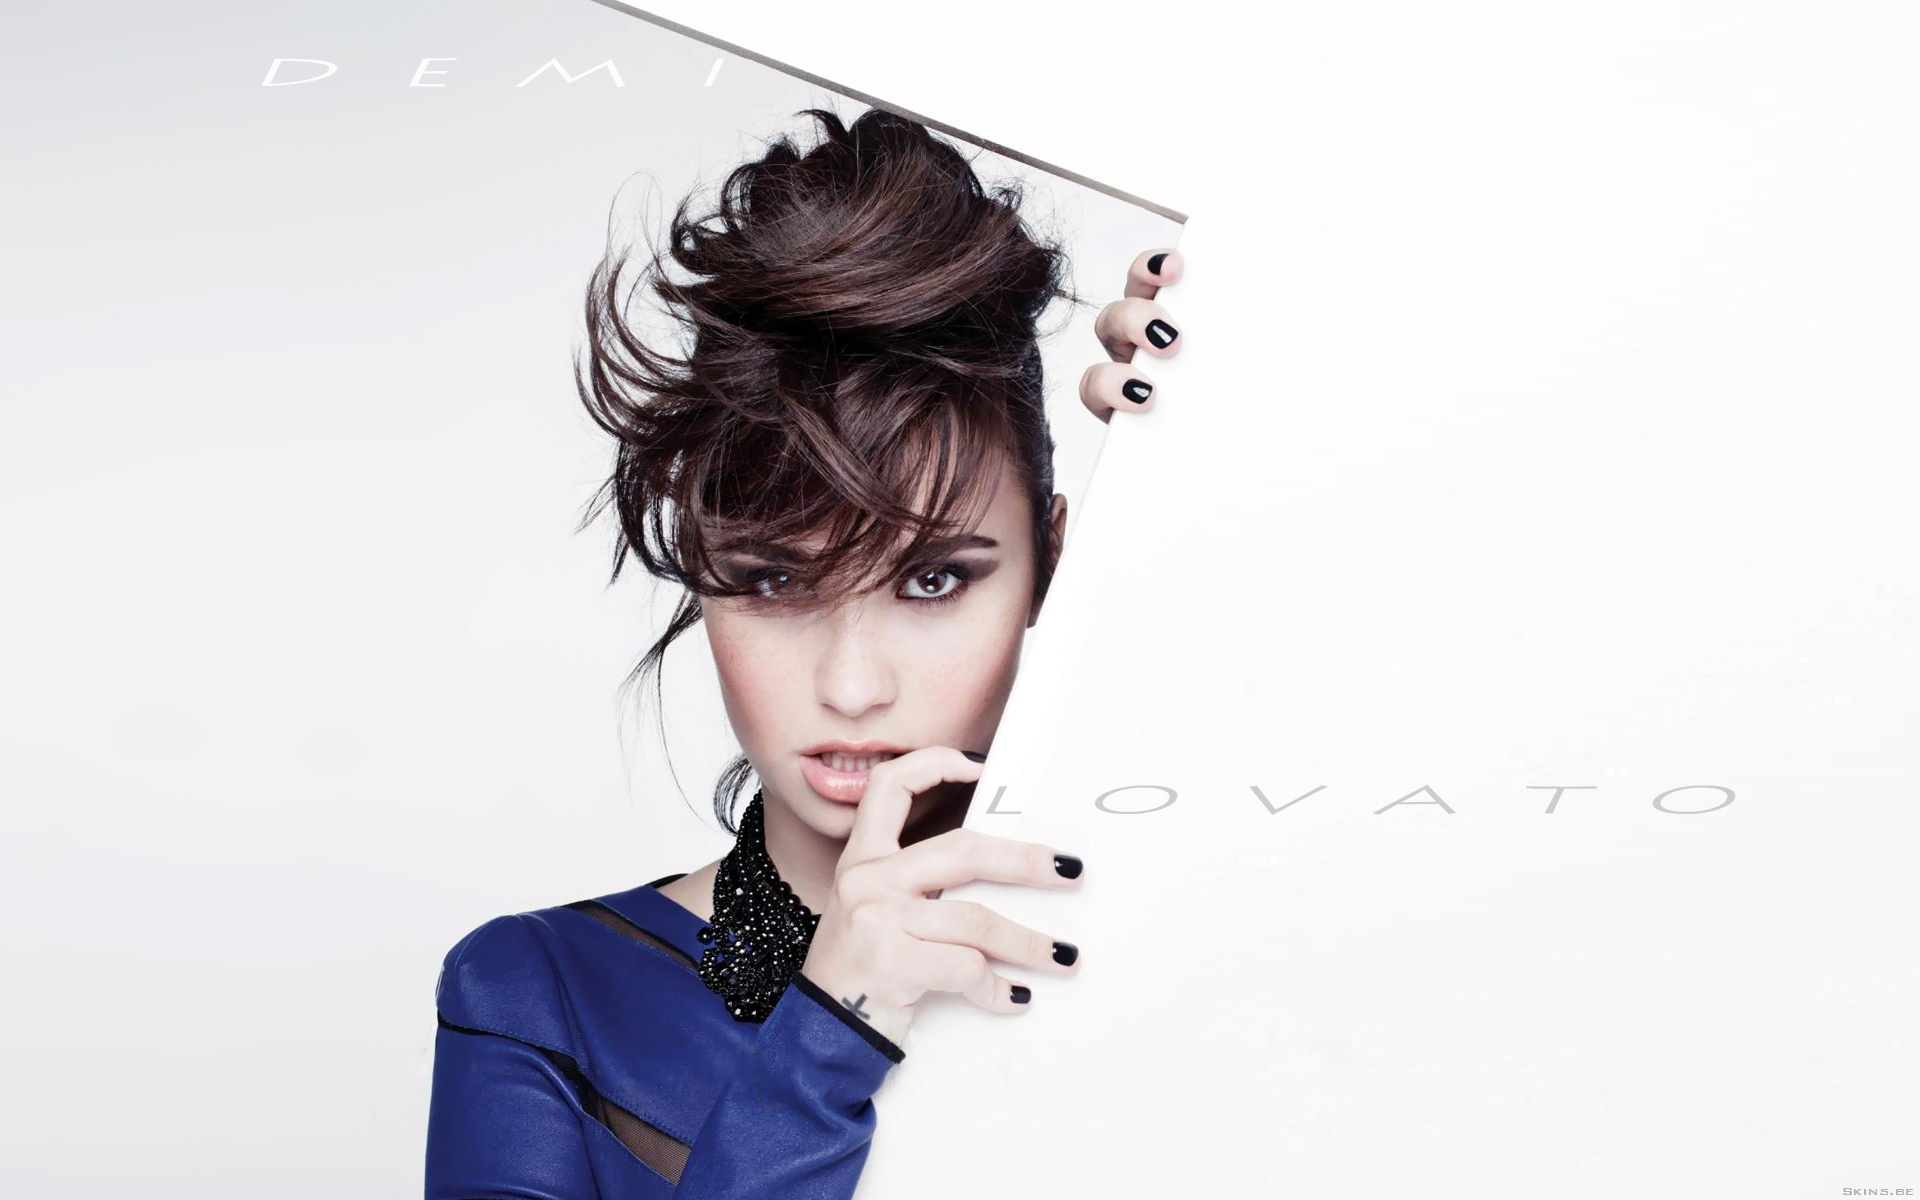 demi lovato wallpapers, pictures, images